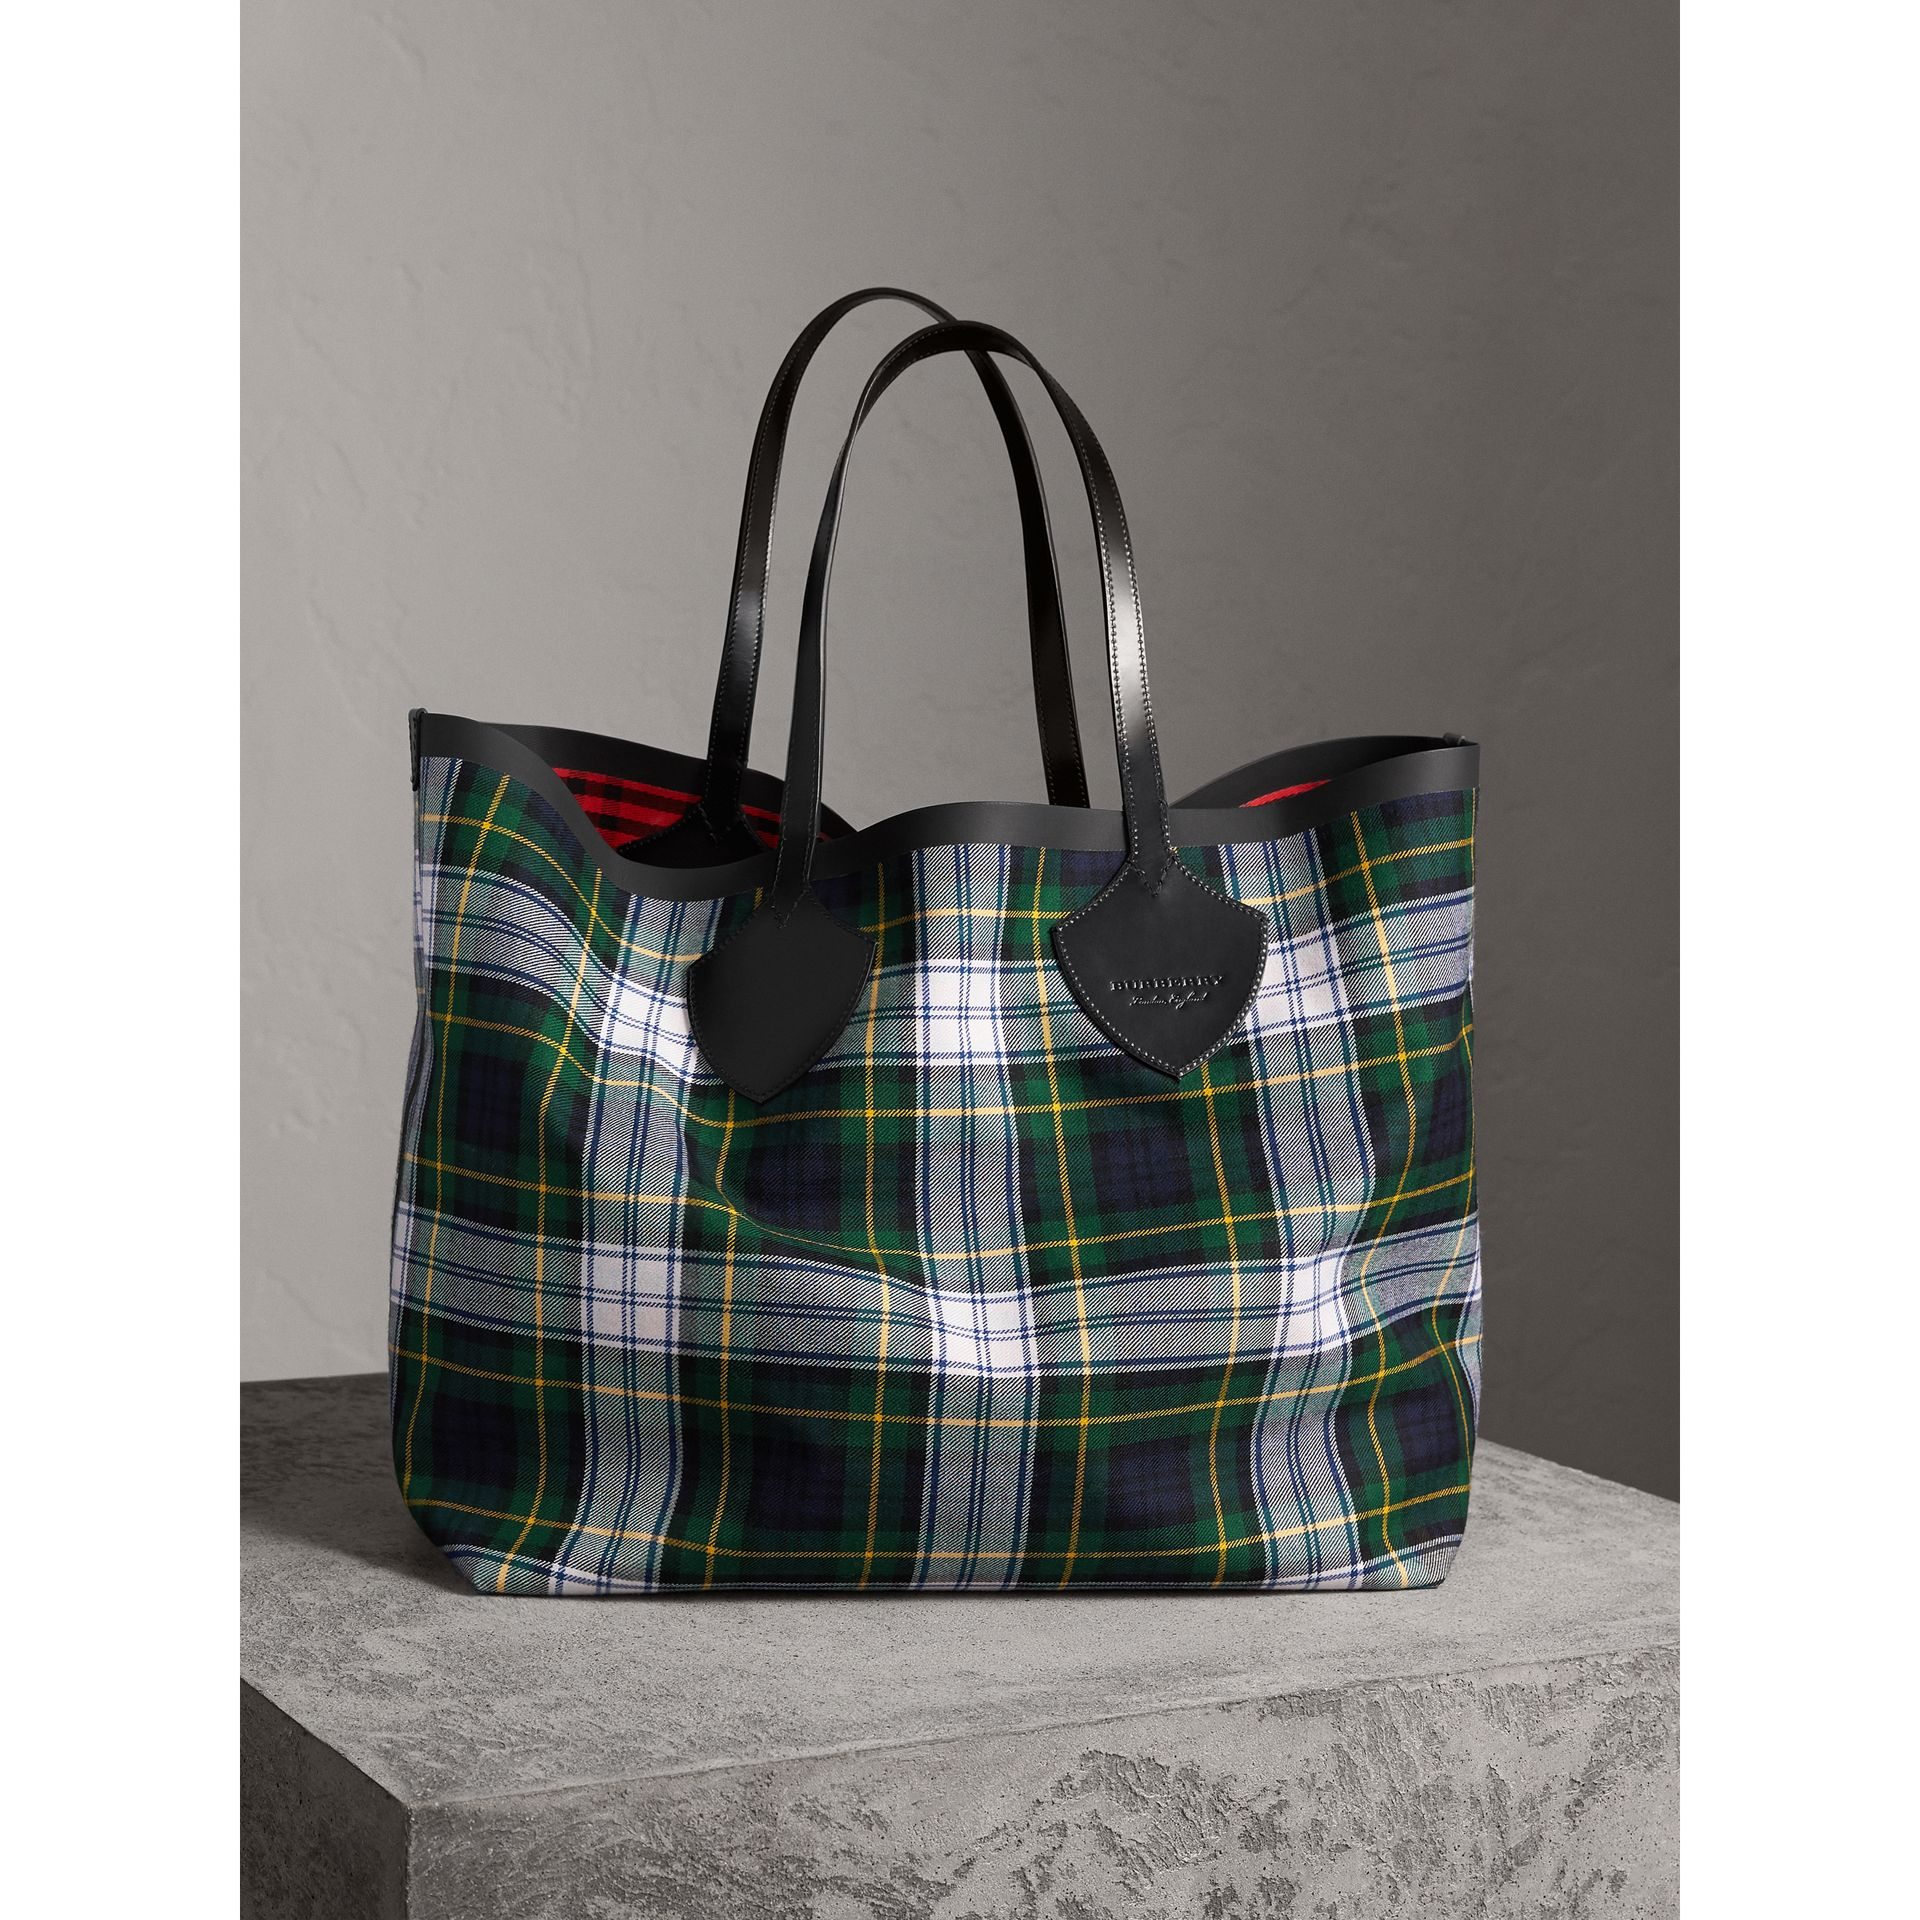 Sac tote The Giant réversible en coton tartan (Bleu Encre/rouge Militaire) | Burberry - photo de la galerie 1